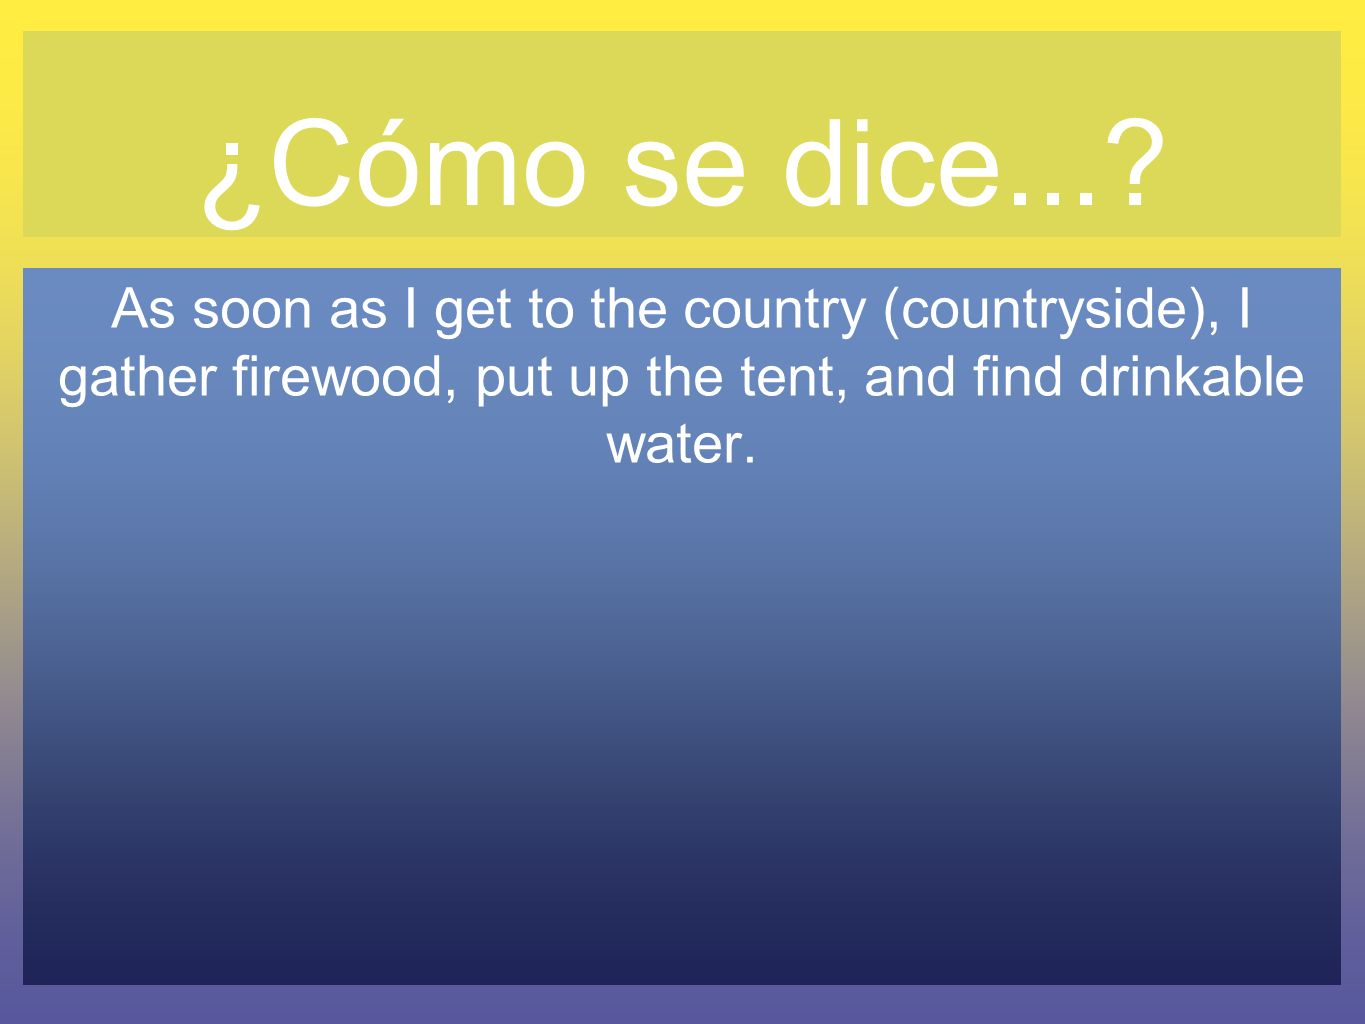 ¿Cómo se dice...? As soon as I get to the country (countryside), I gather firewood, put up the tent, and find drinkable water.